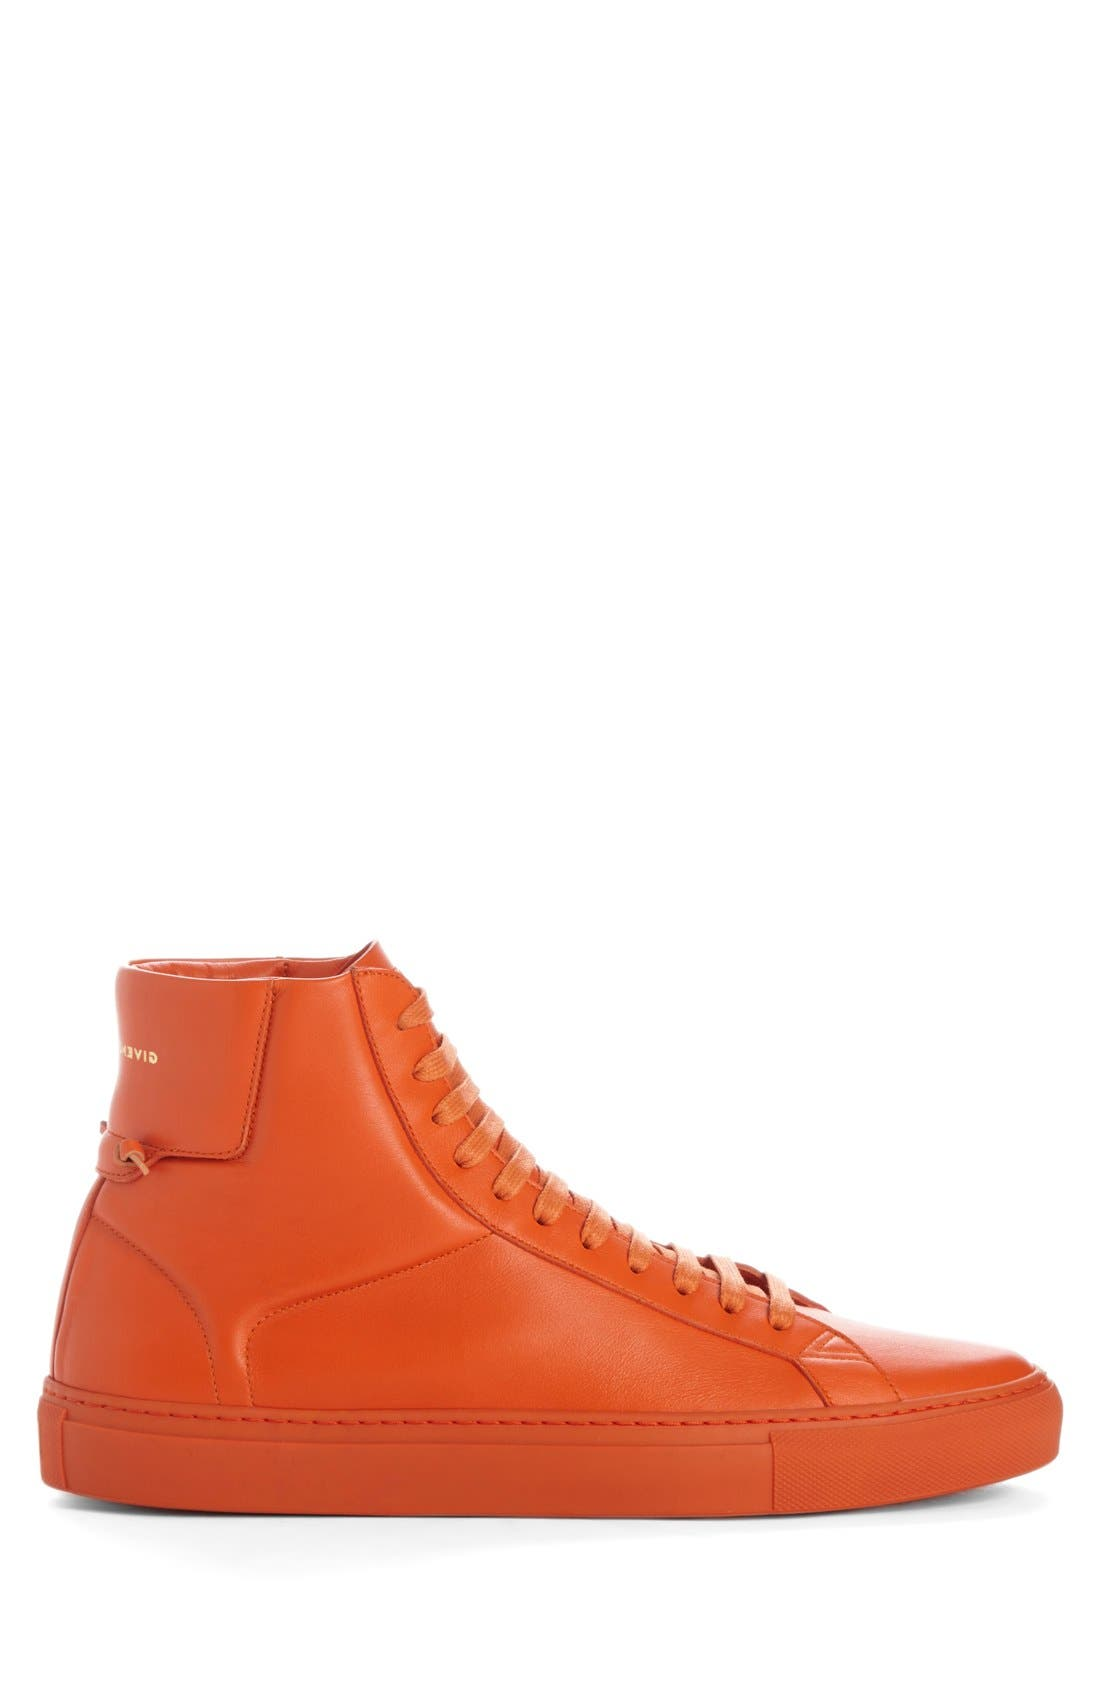 'Urban Knots' High Top Sneaker,                             Alternate thumbnail 5, color,                             Orange Leather